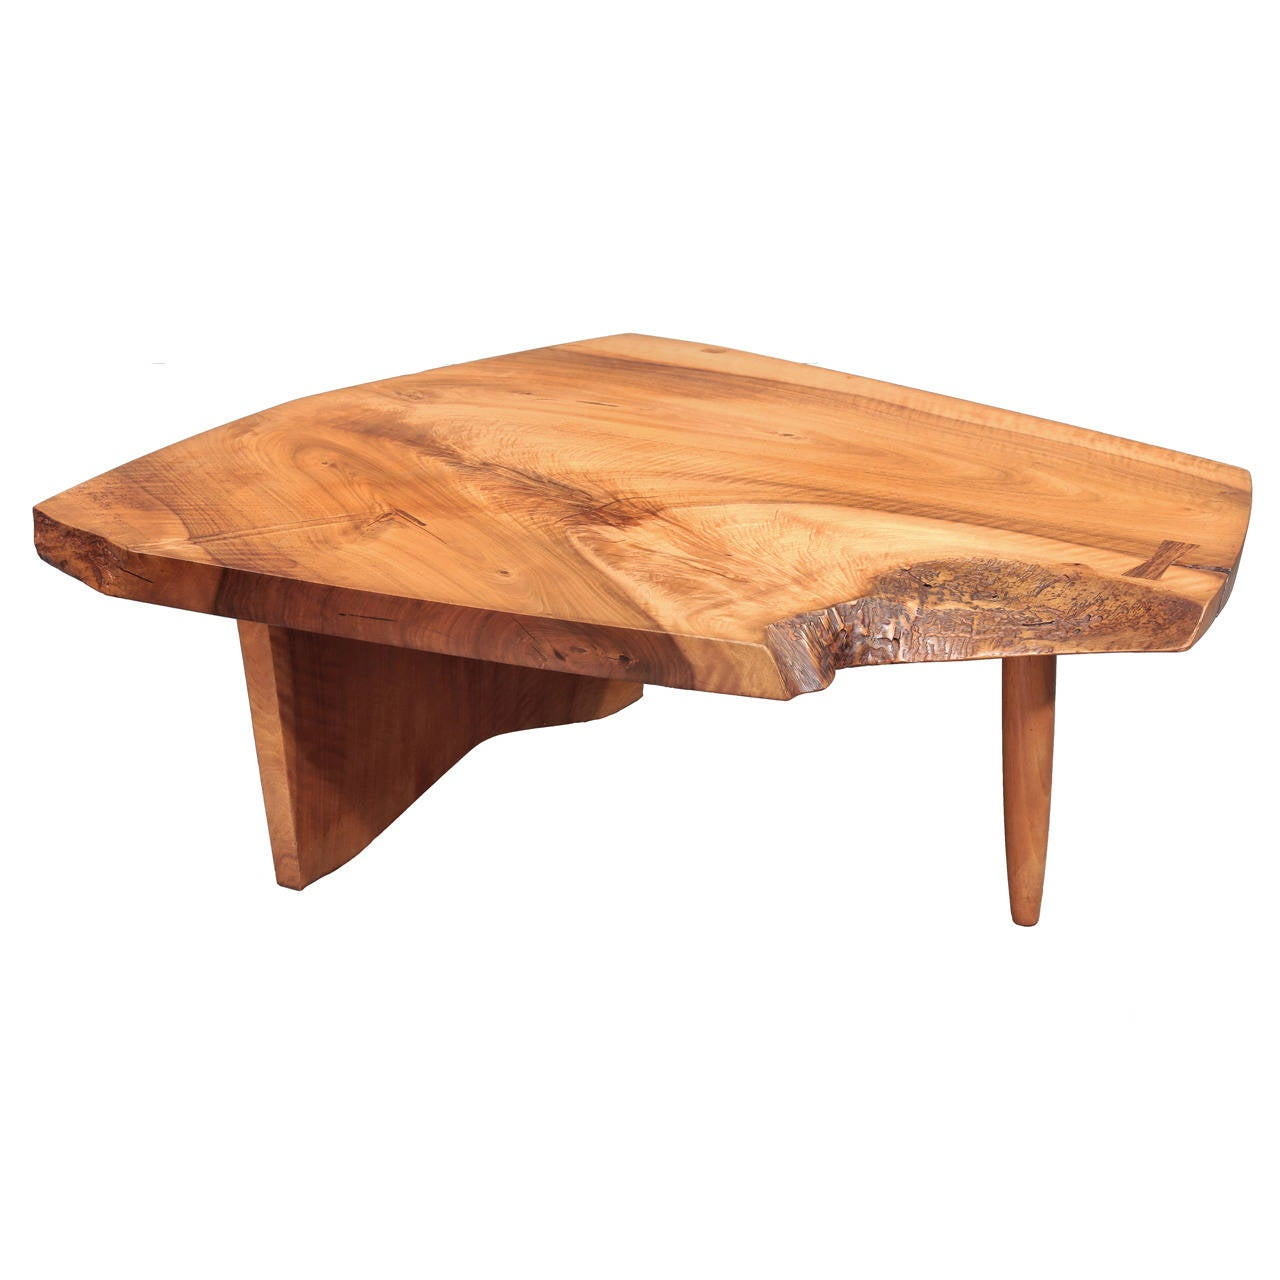 Conoid Coffee Table By George Nakashima 1973 At 1stdibs